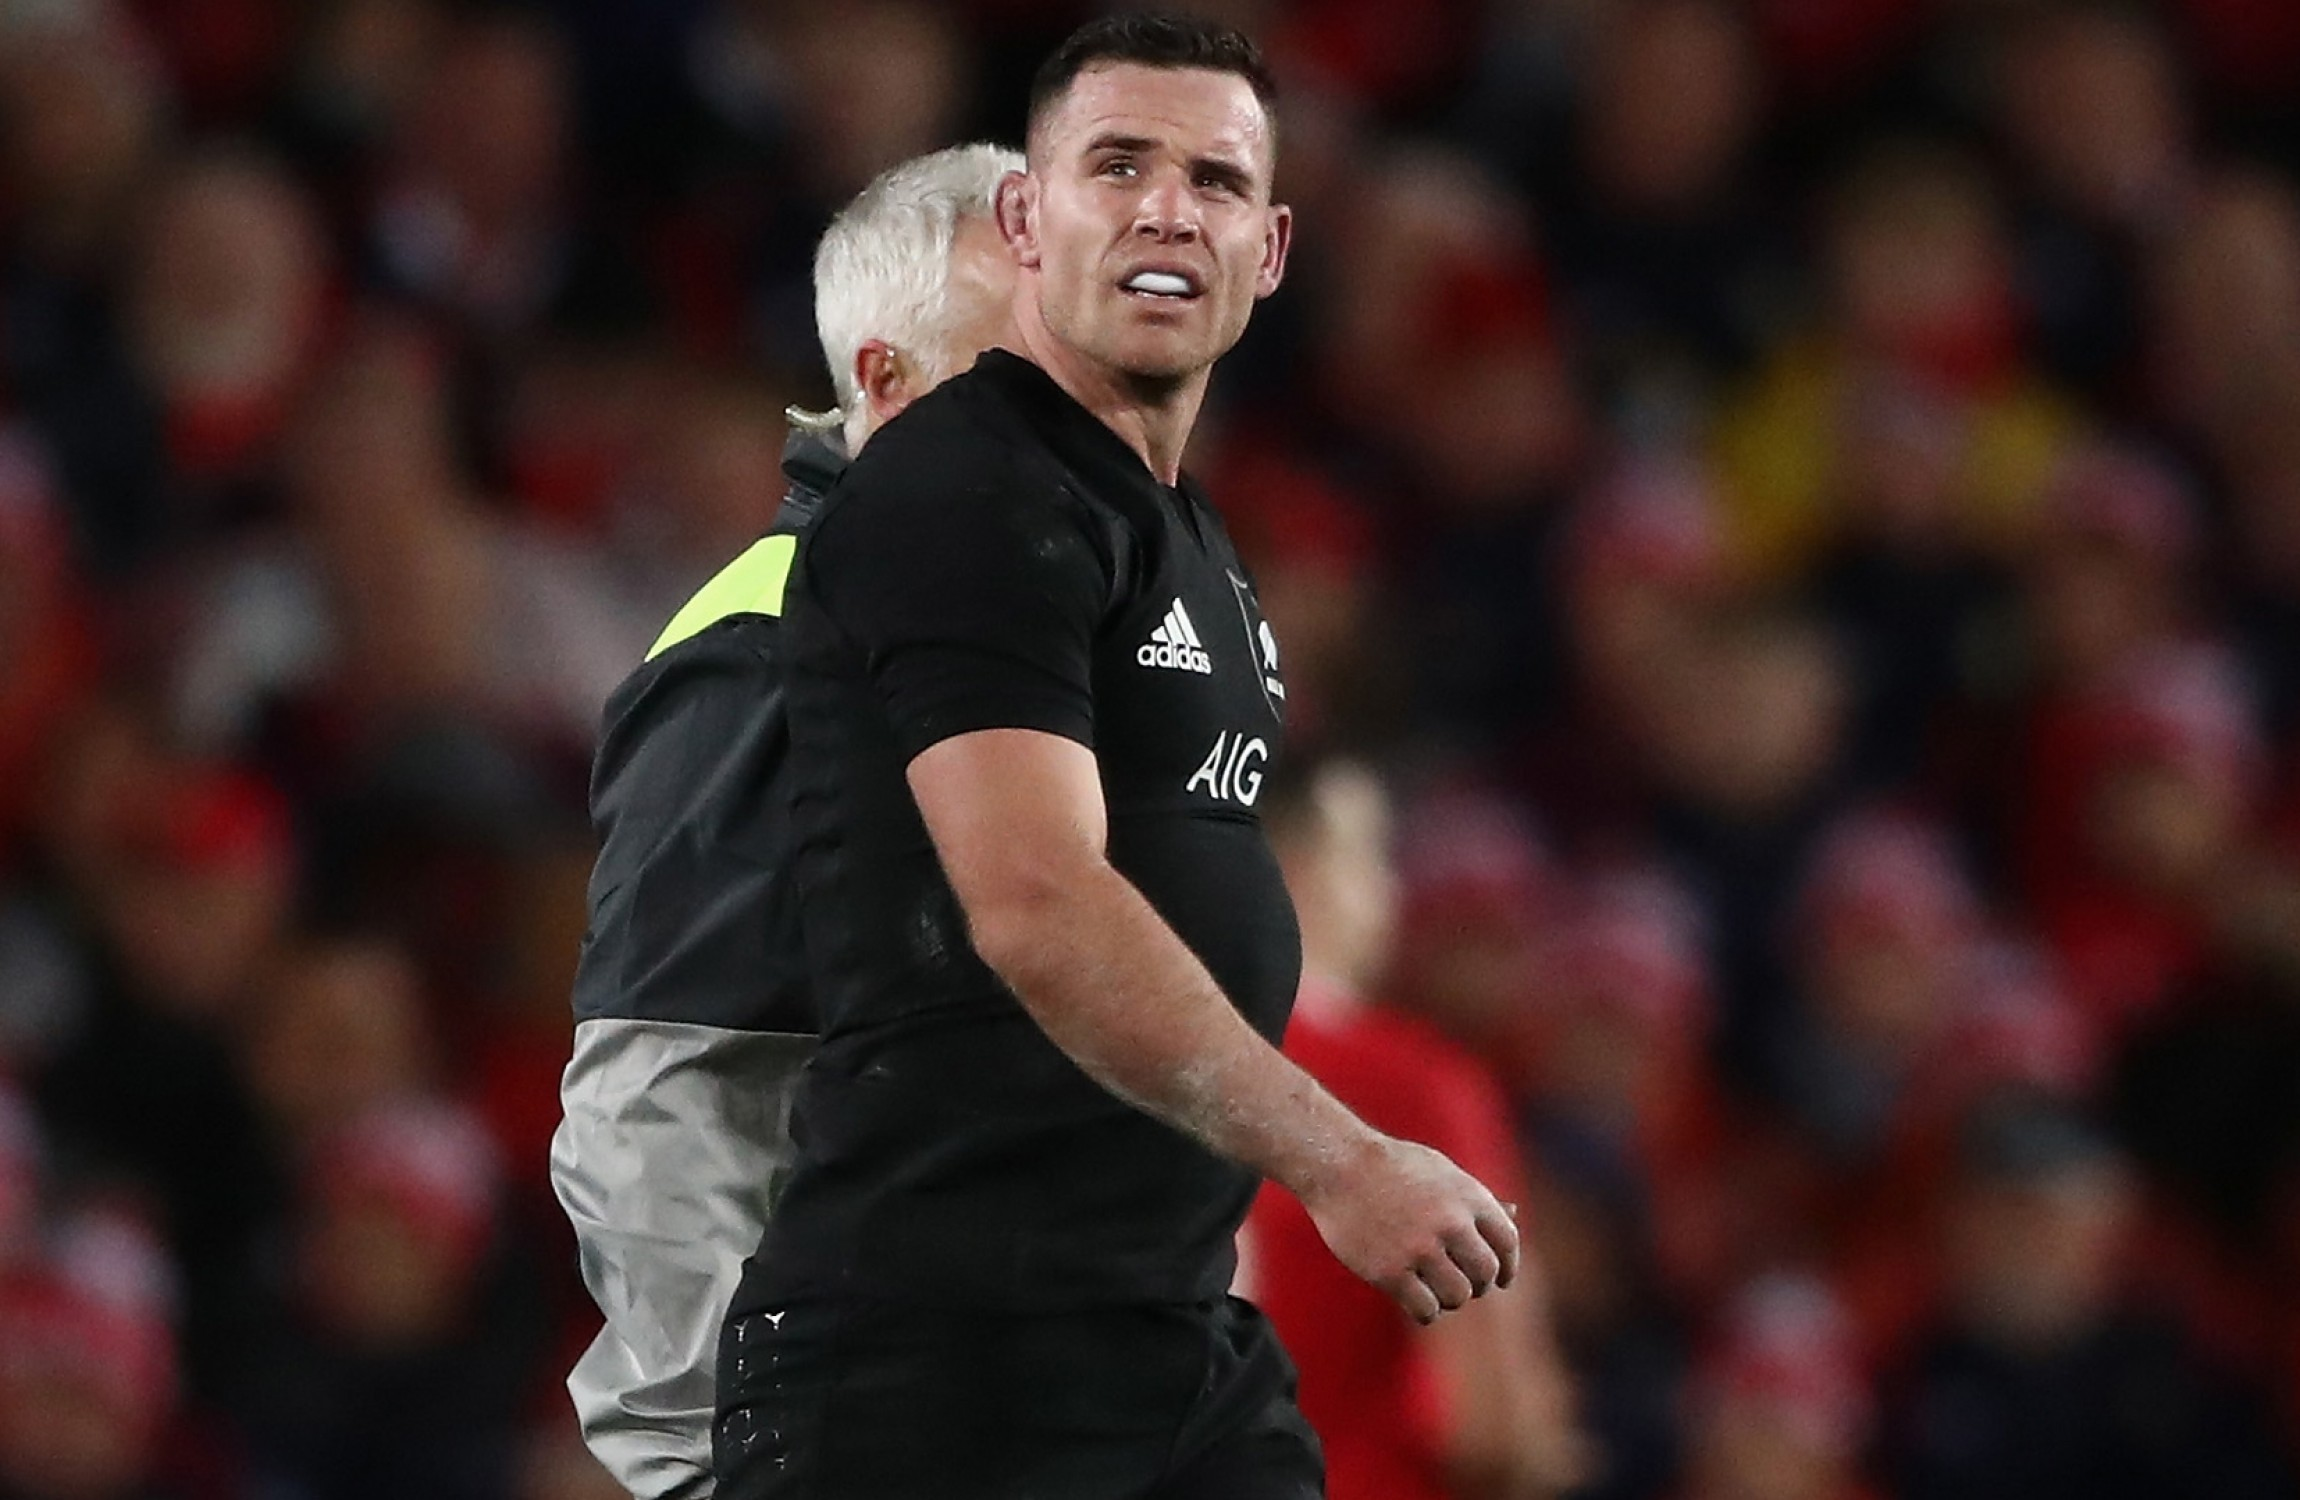 All Blacks centre Ryan Crotty re-signs with Crusaders